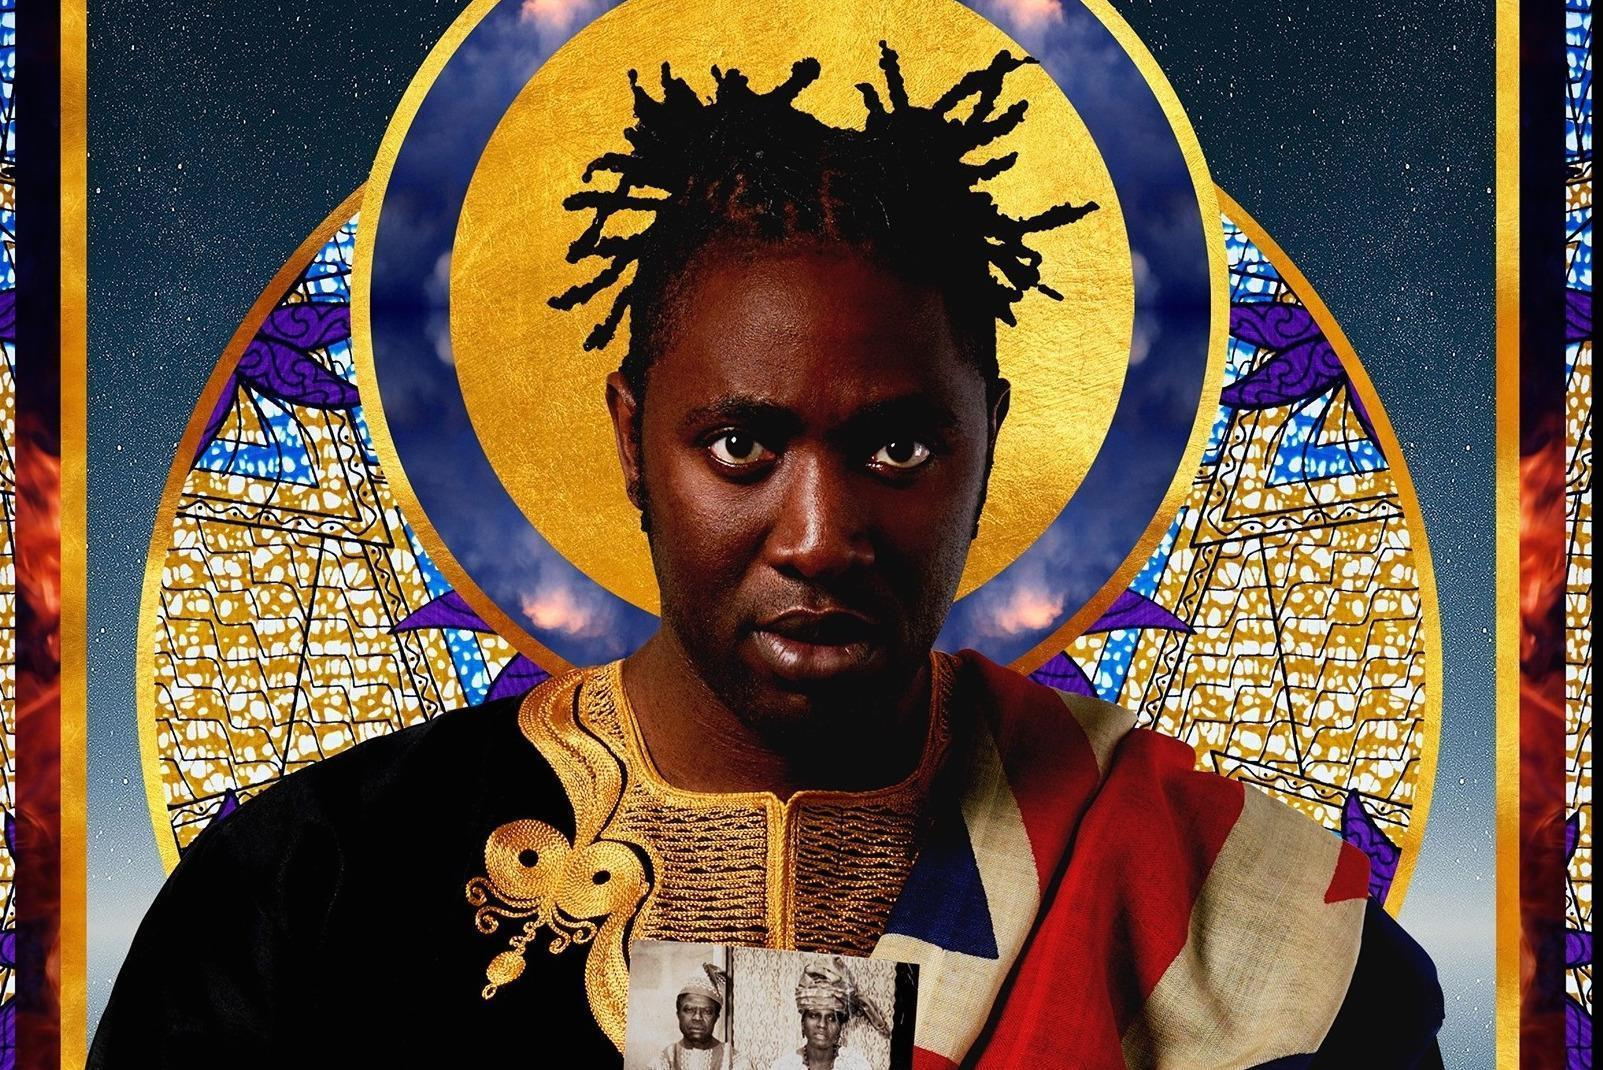 Album reviews: Kele Okereke – 2042, and SebastiAn – Thirst